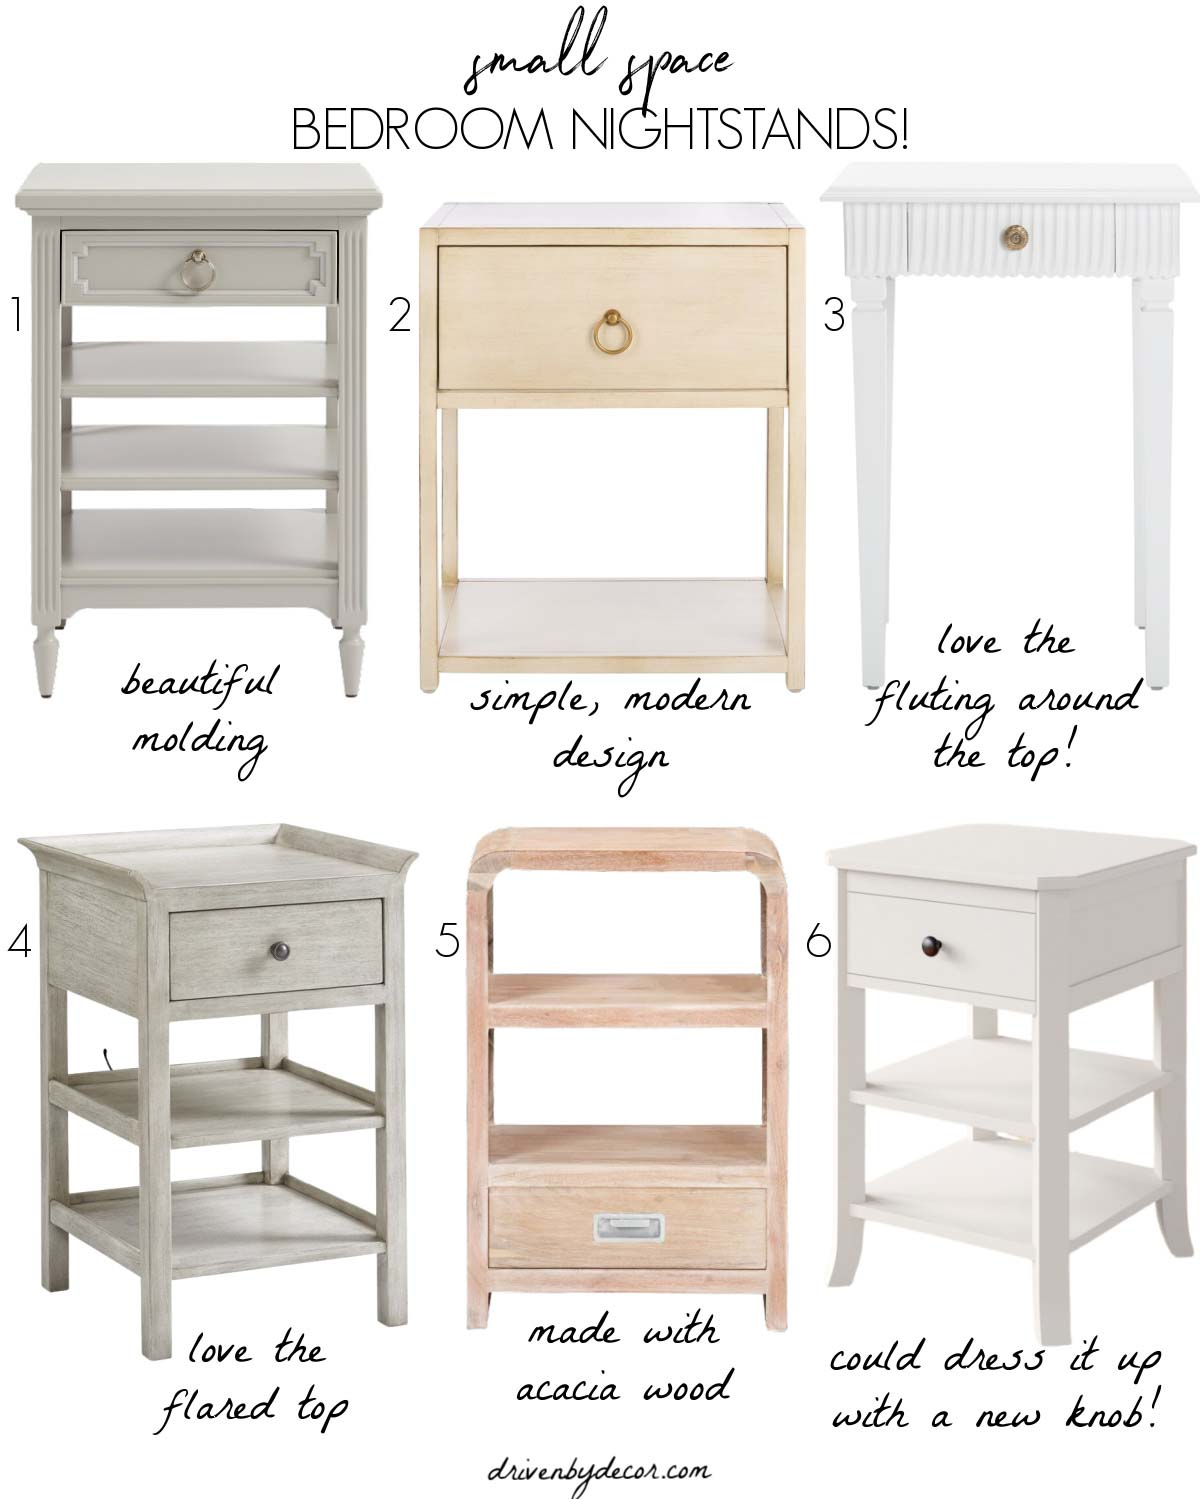 Favorite narrow, small space nightstands!